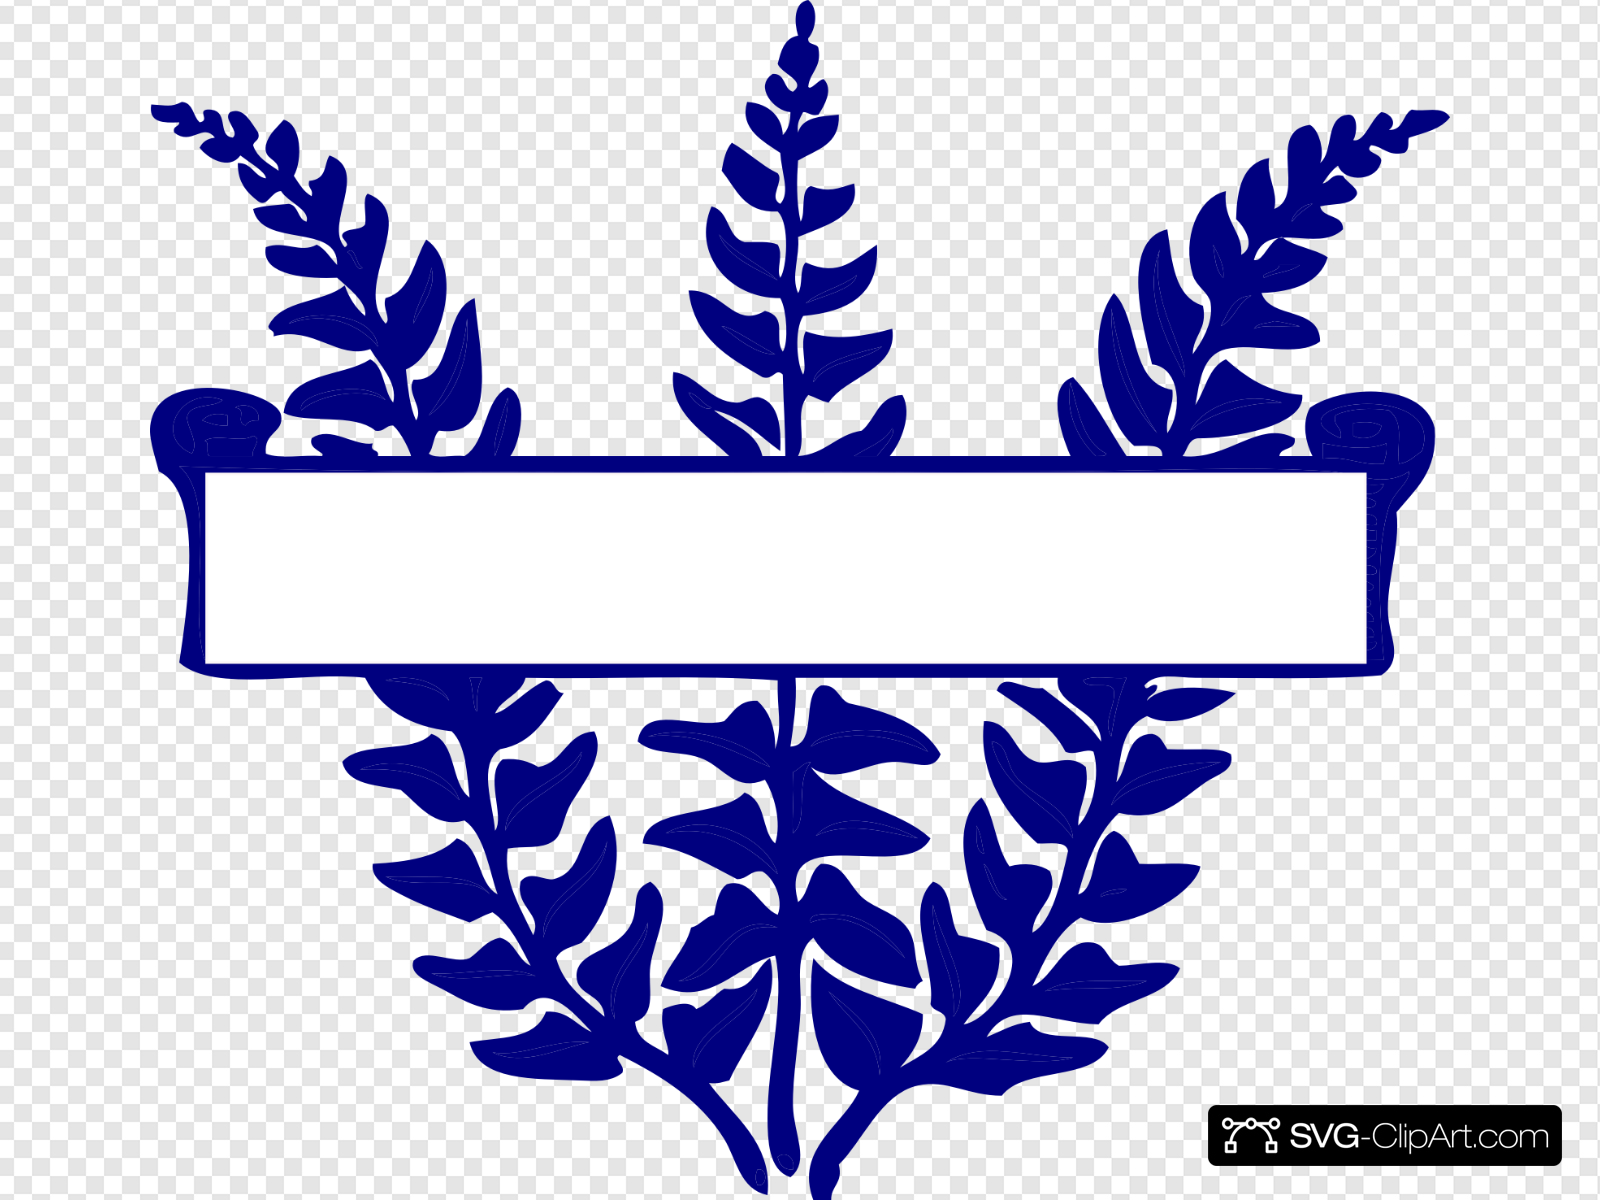 Blue Fern Scroll Clip art, Icon and SVG.